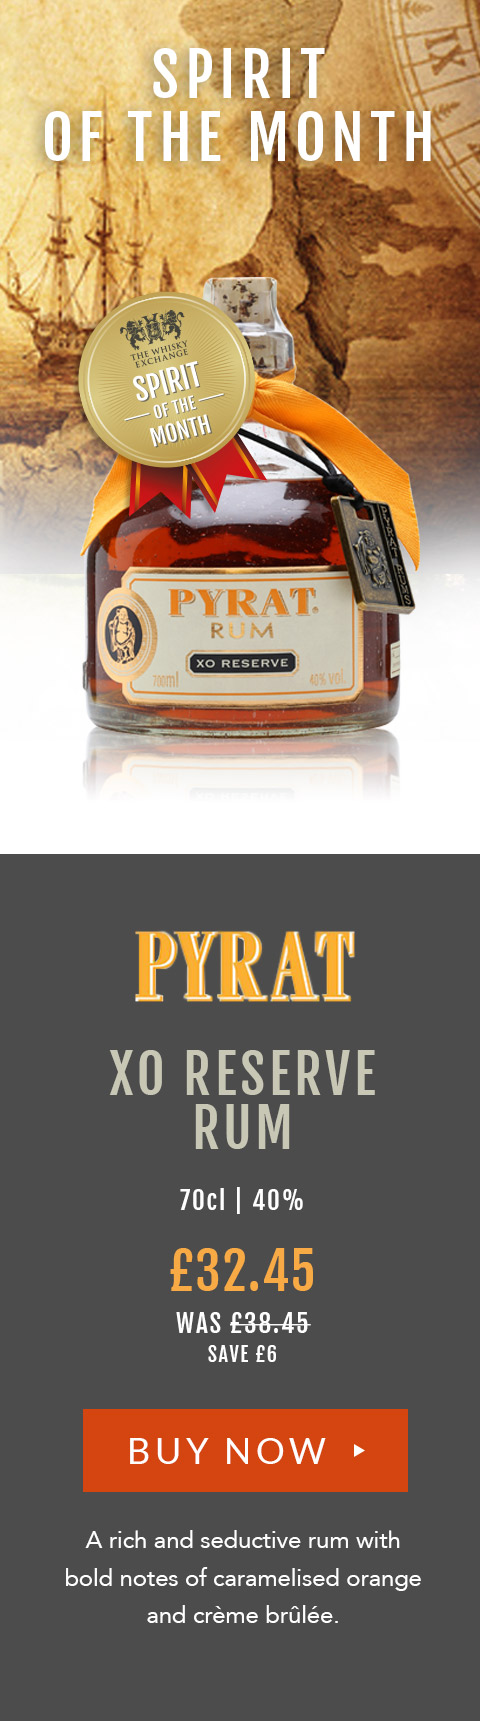 Spirit of the Month Pyrat XO Reserve Rum 70cl | 40% A rich and seductive rum with bold notes of caramelised orange and crème brûlée. £32.45 (was £38.45) save £6